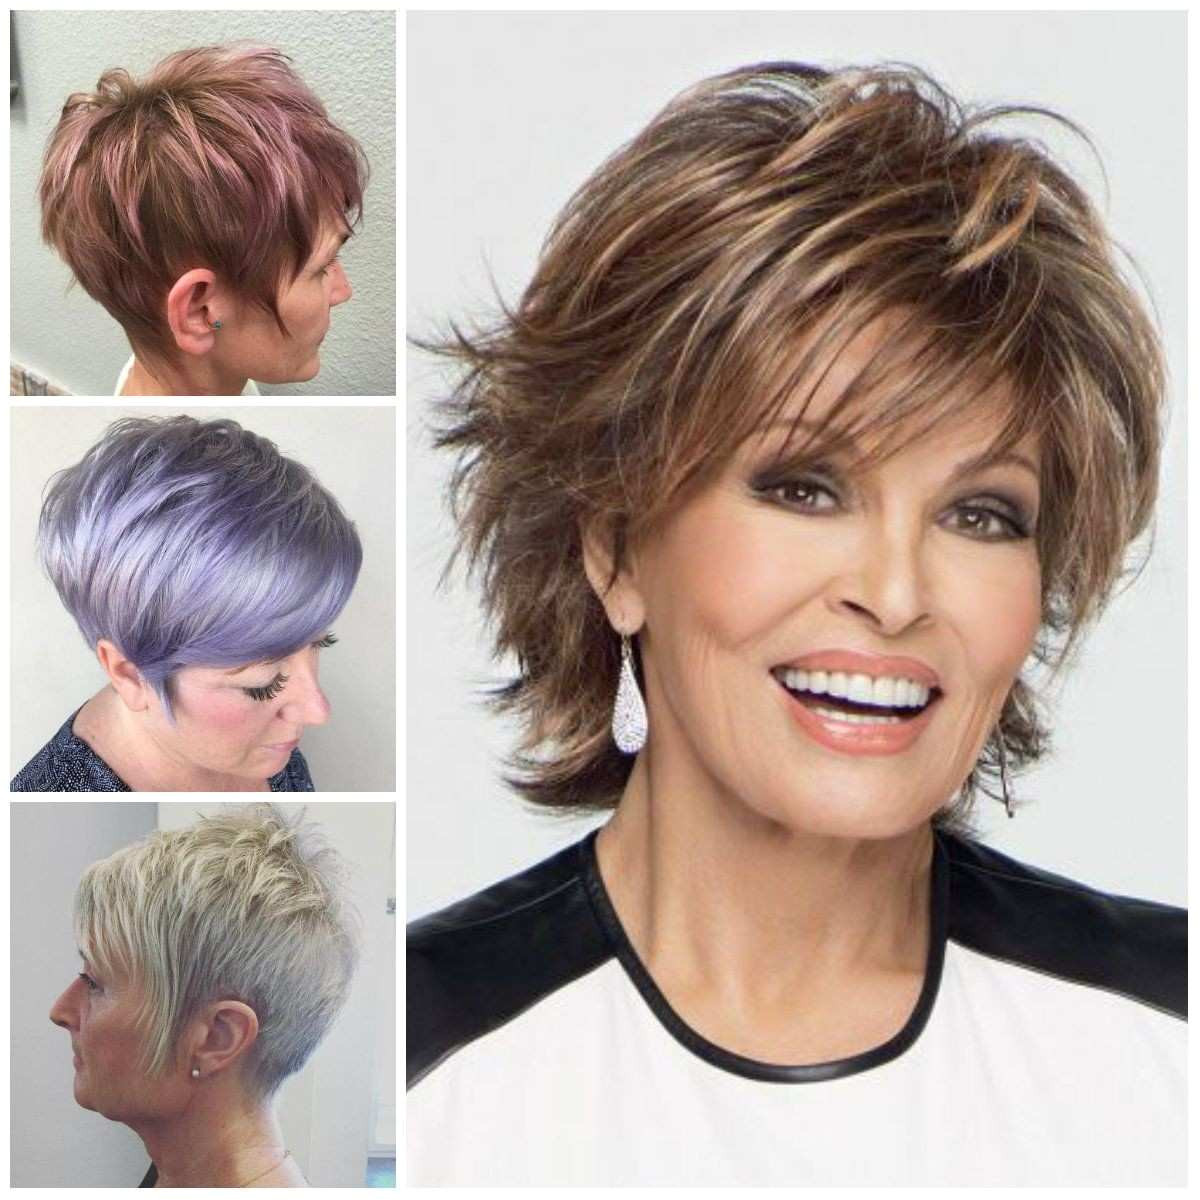 Mary J Blige Hair Stylist New Awesome Short Hairstyles for Women Elegant Mens Short Hairstyle